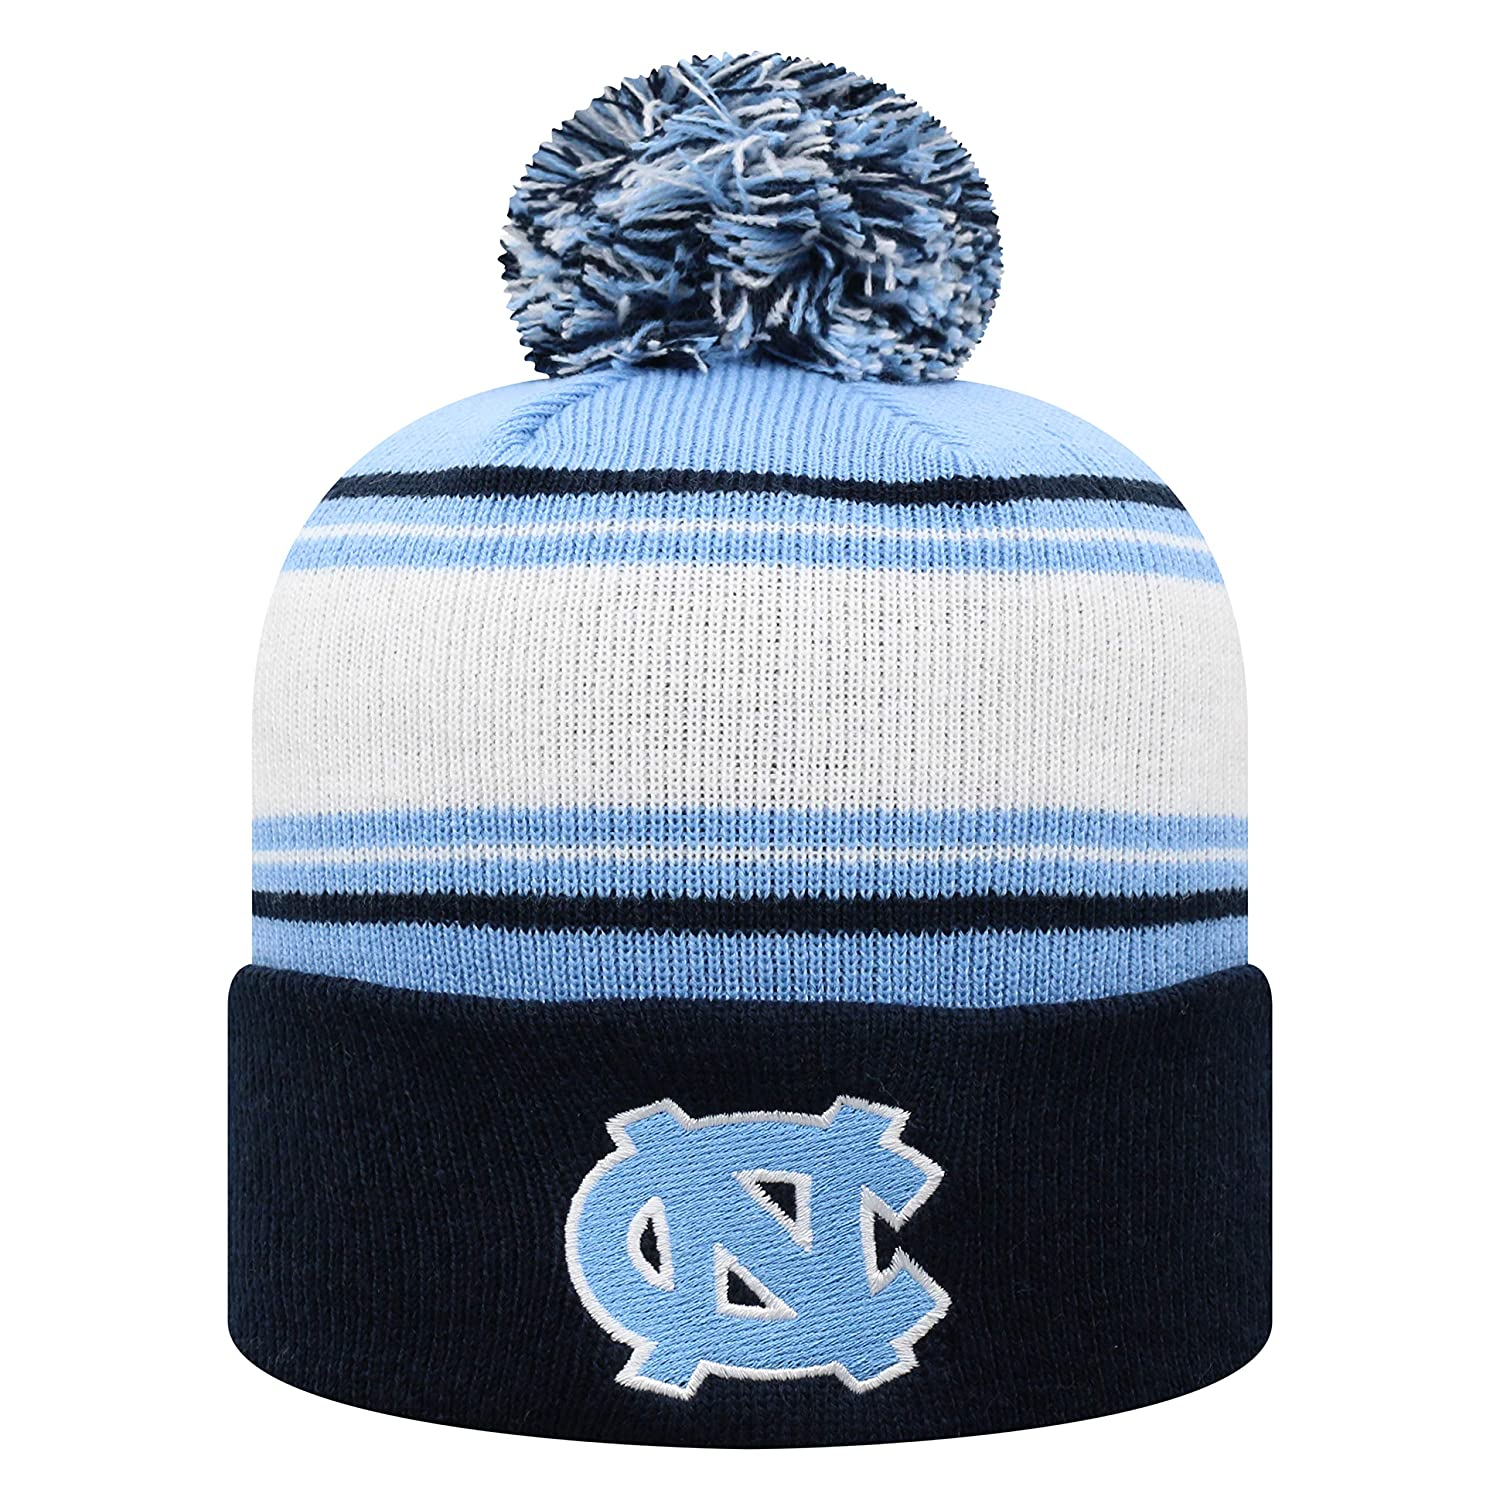 Top of the World Mens Knit Ambient Warm Team Icon Hat